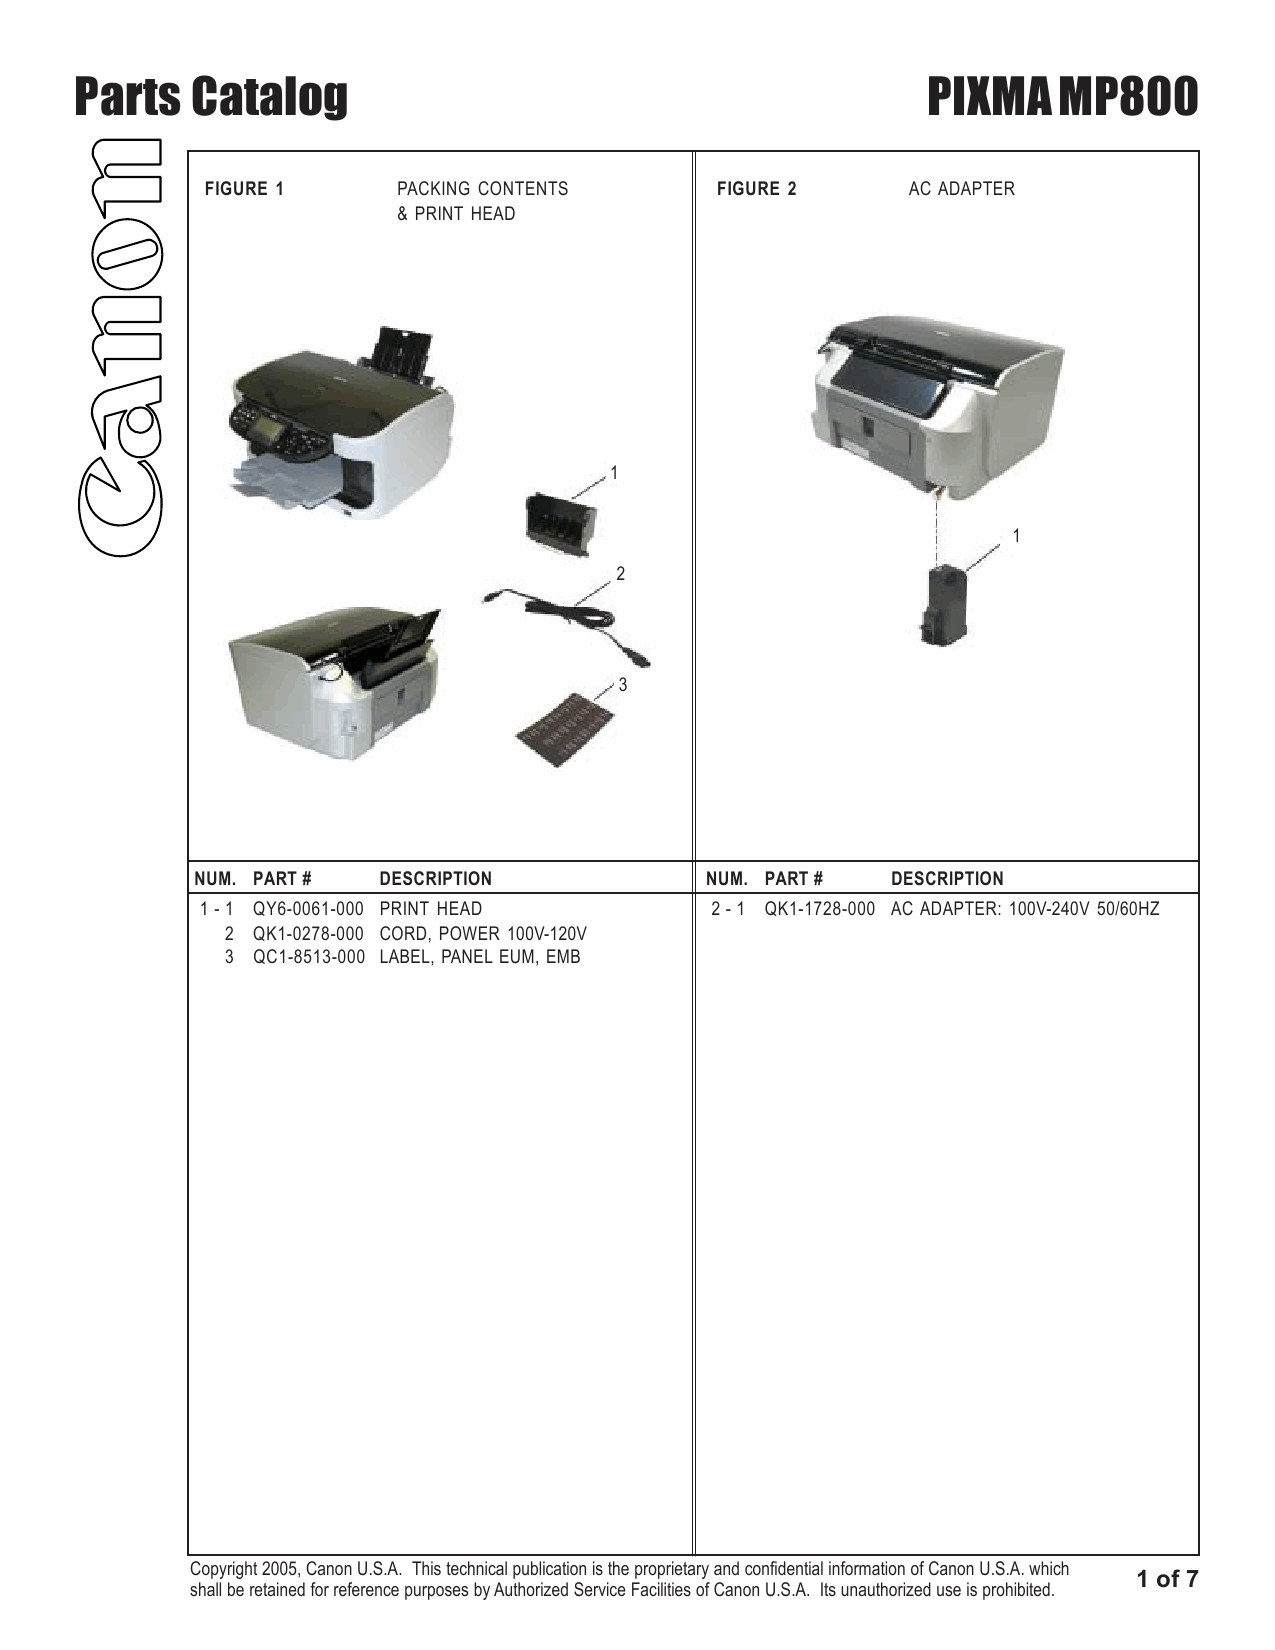 Canon PIXMA MP800 Parts Catalog Manual-2